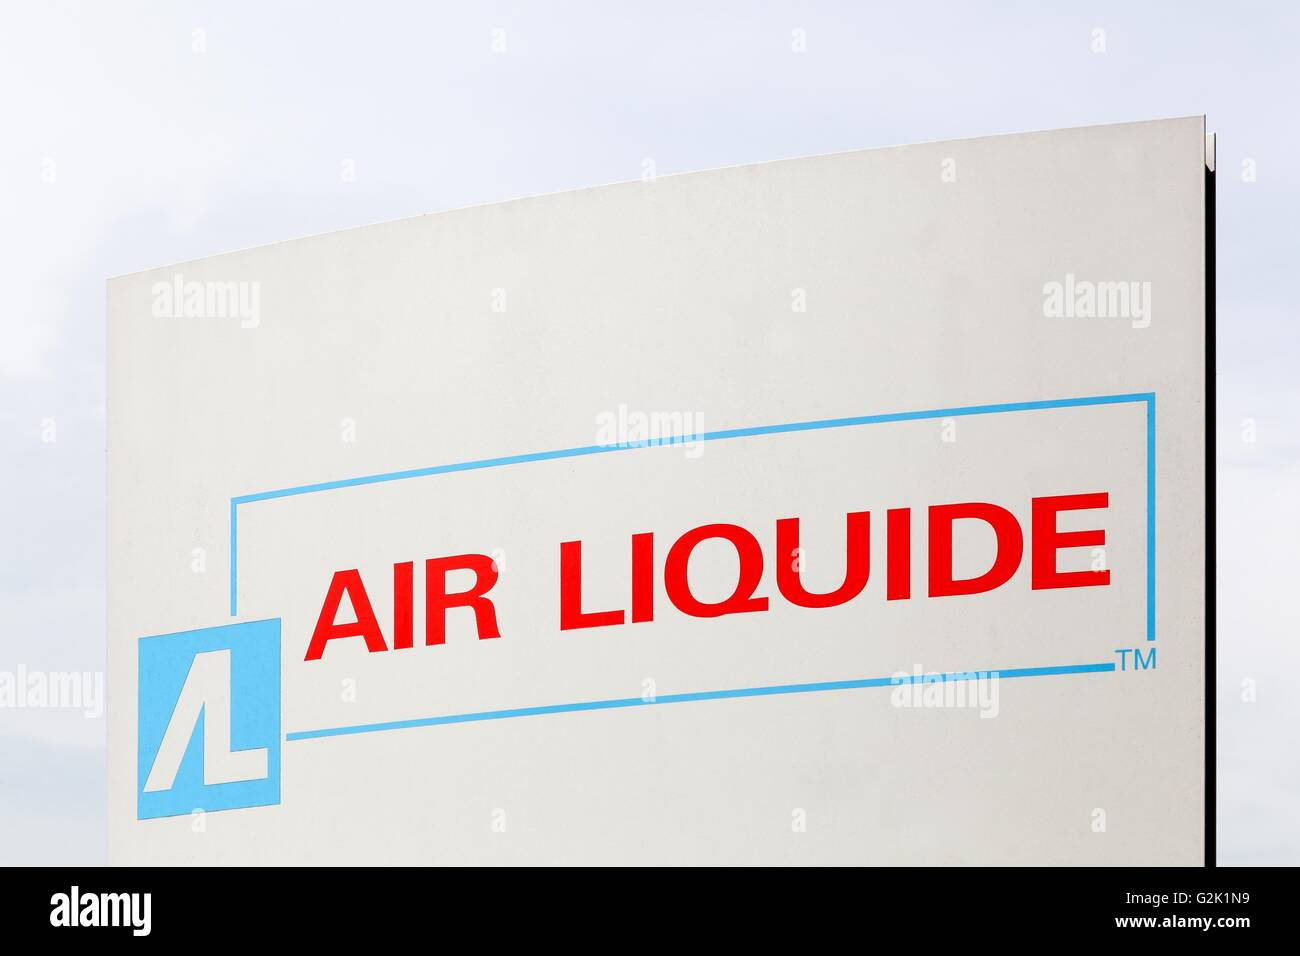 Air Liquide sign on a panel. Air Liquide is a french multinational company which supplies industrial gases - Stock Image